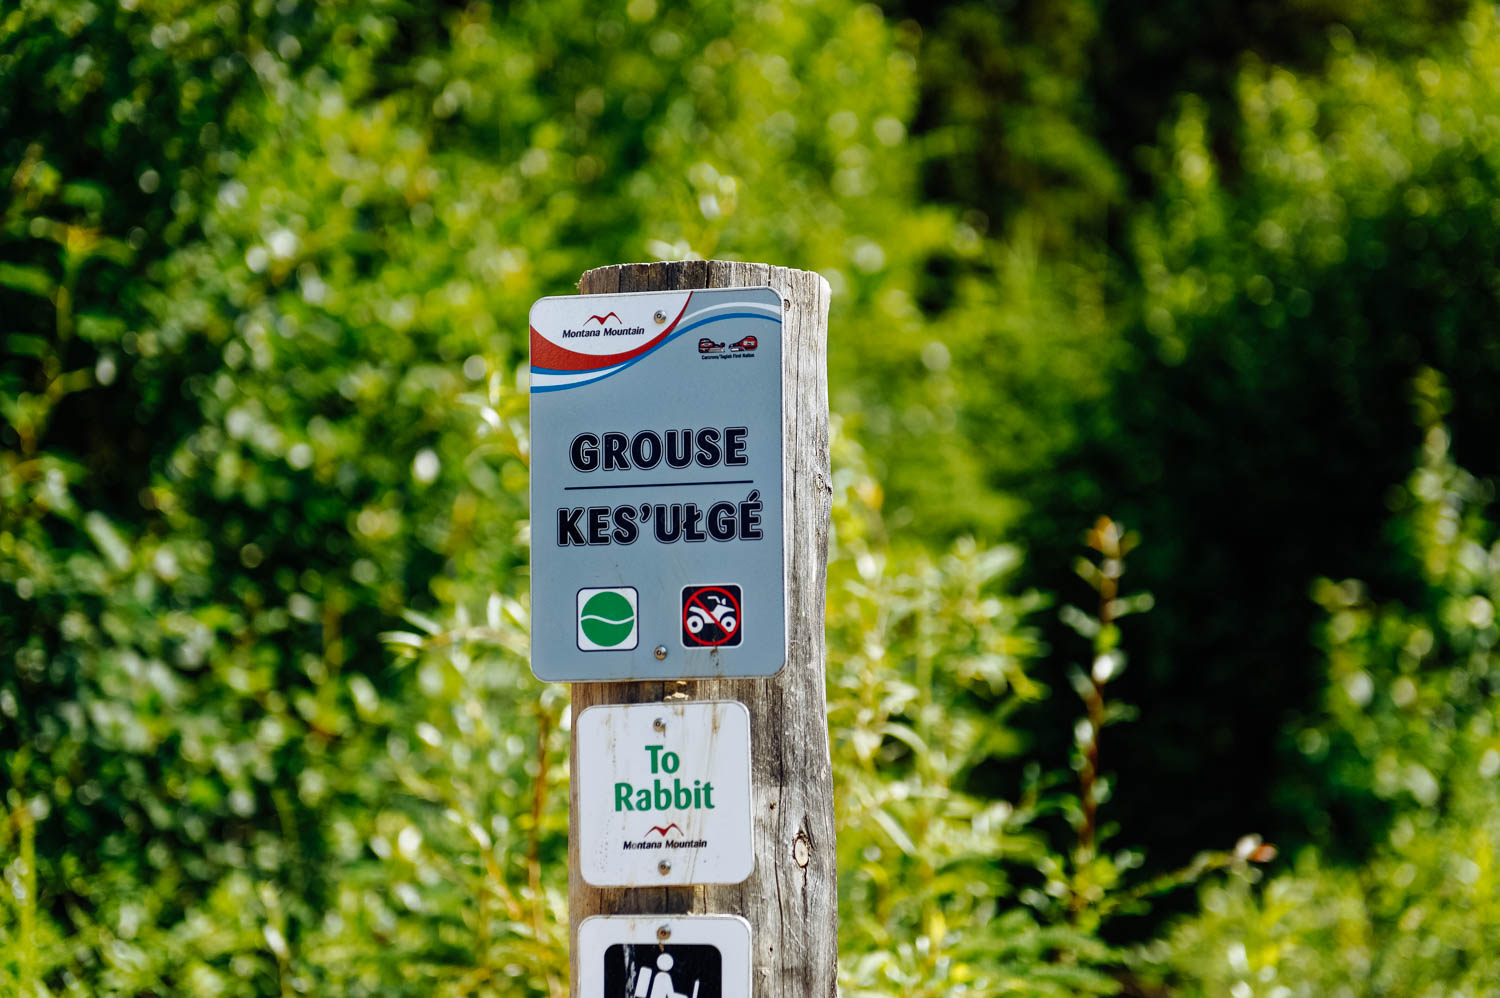 I love that all the trail signs are in their native language too (yes, that's the least. Montana Mountain is the Carcross/Tagish First Nation sacred mountain).